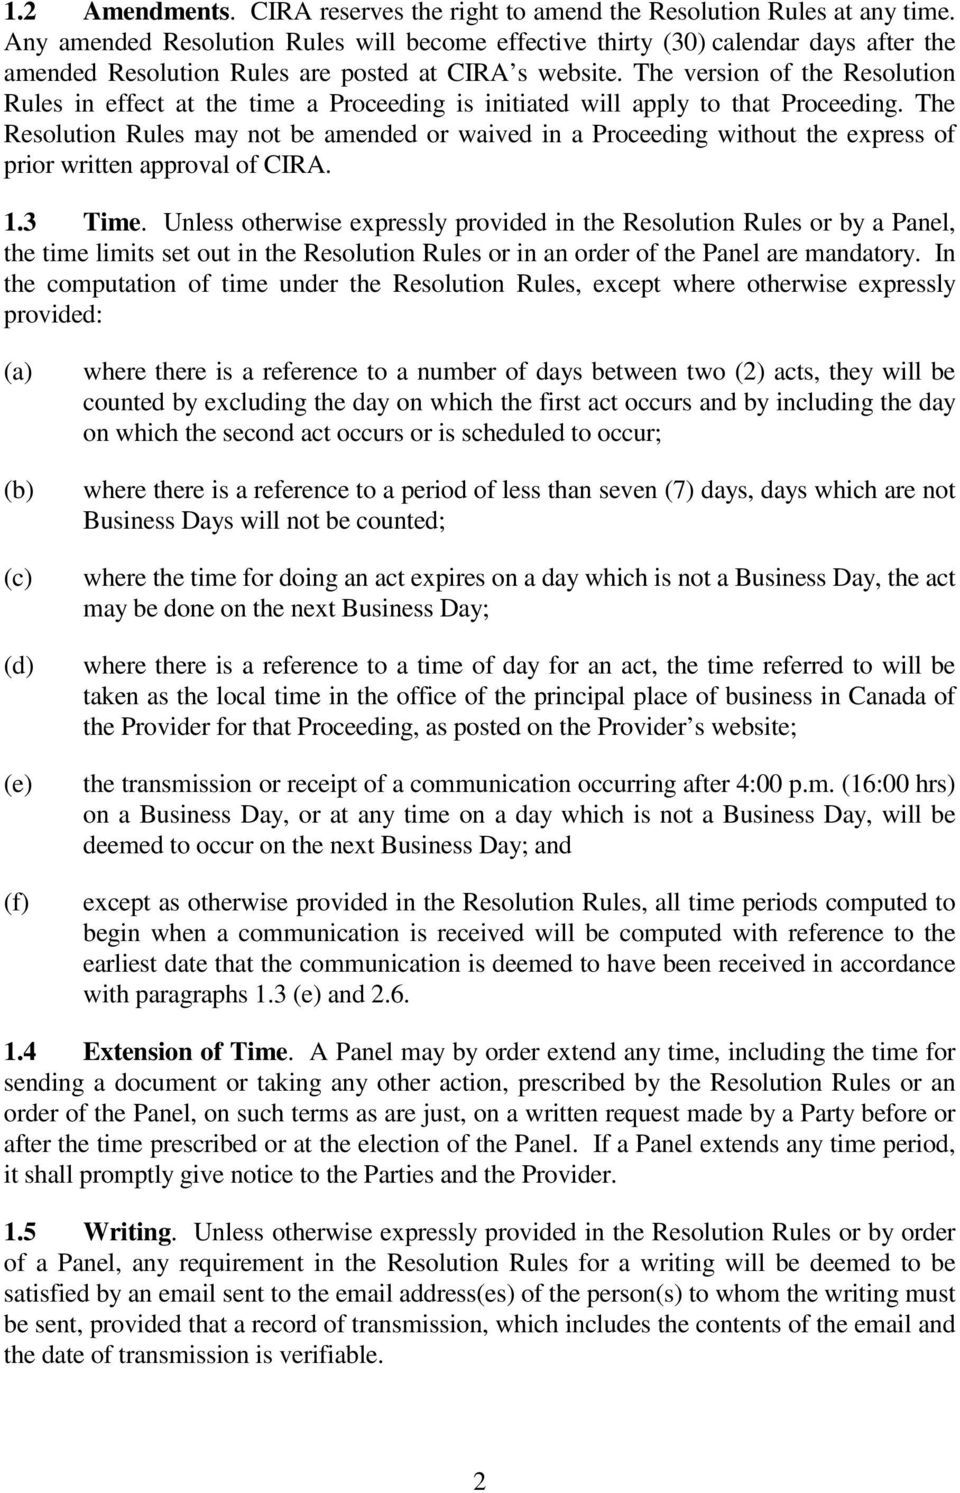 The version of the Resolution Rules in effect at the time a Proceeding is initiated will apply to that Proceeding.